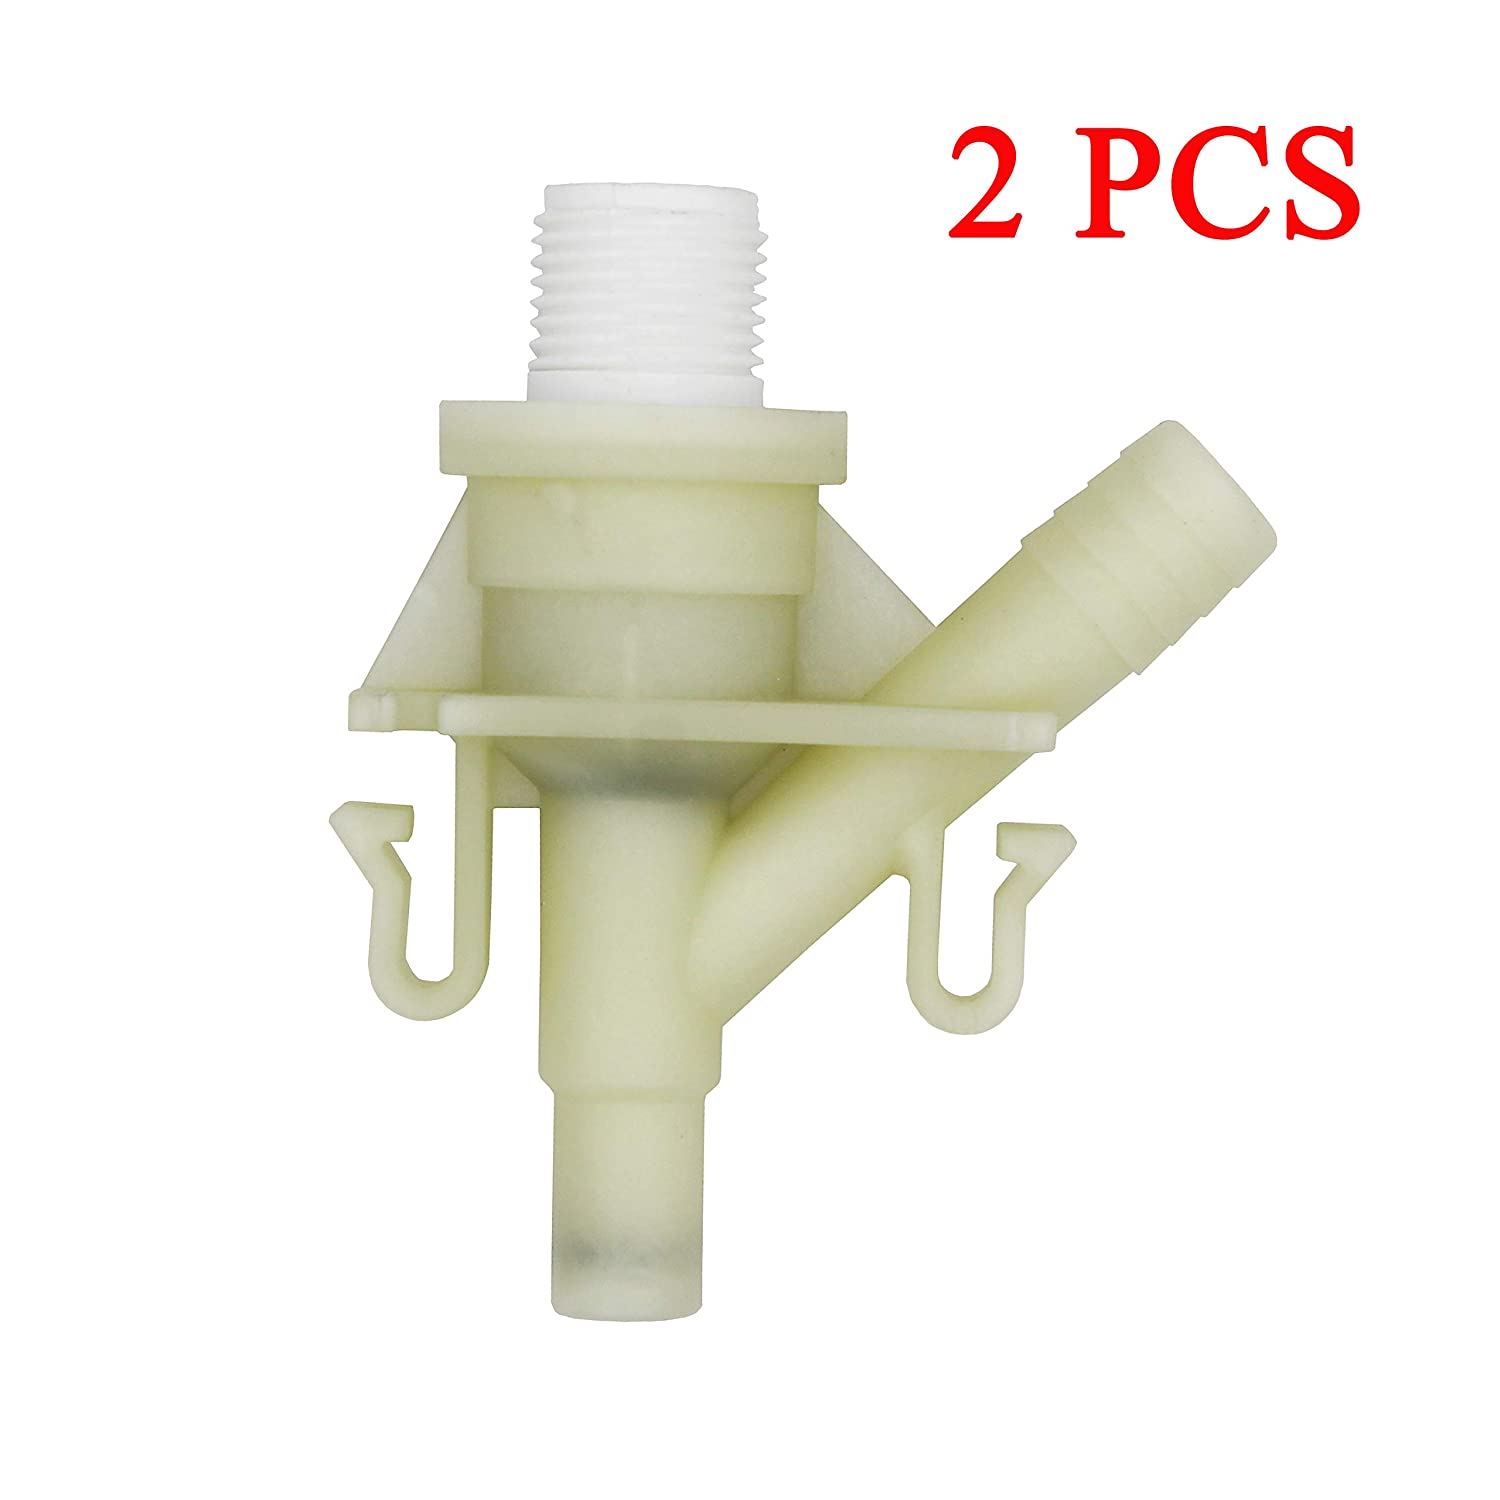 10 PCS for Sealand Marine Toilet Replacement iFJF New Durable Plastic Water Valve Kit 385311641 for 300 310 320 Series